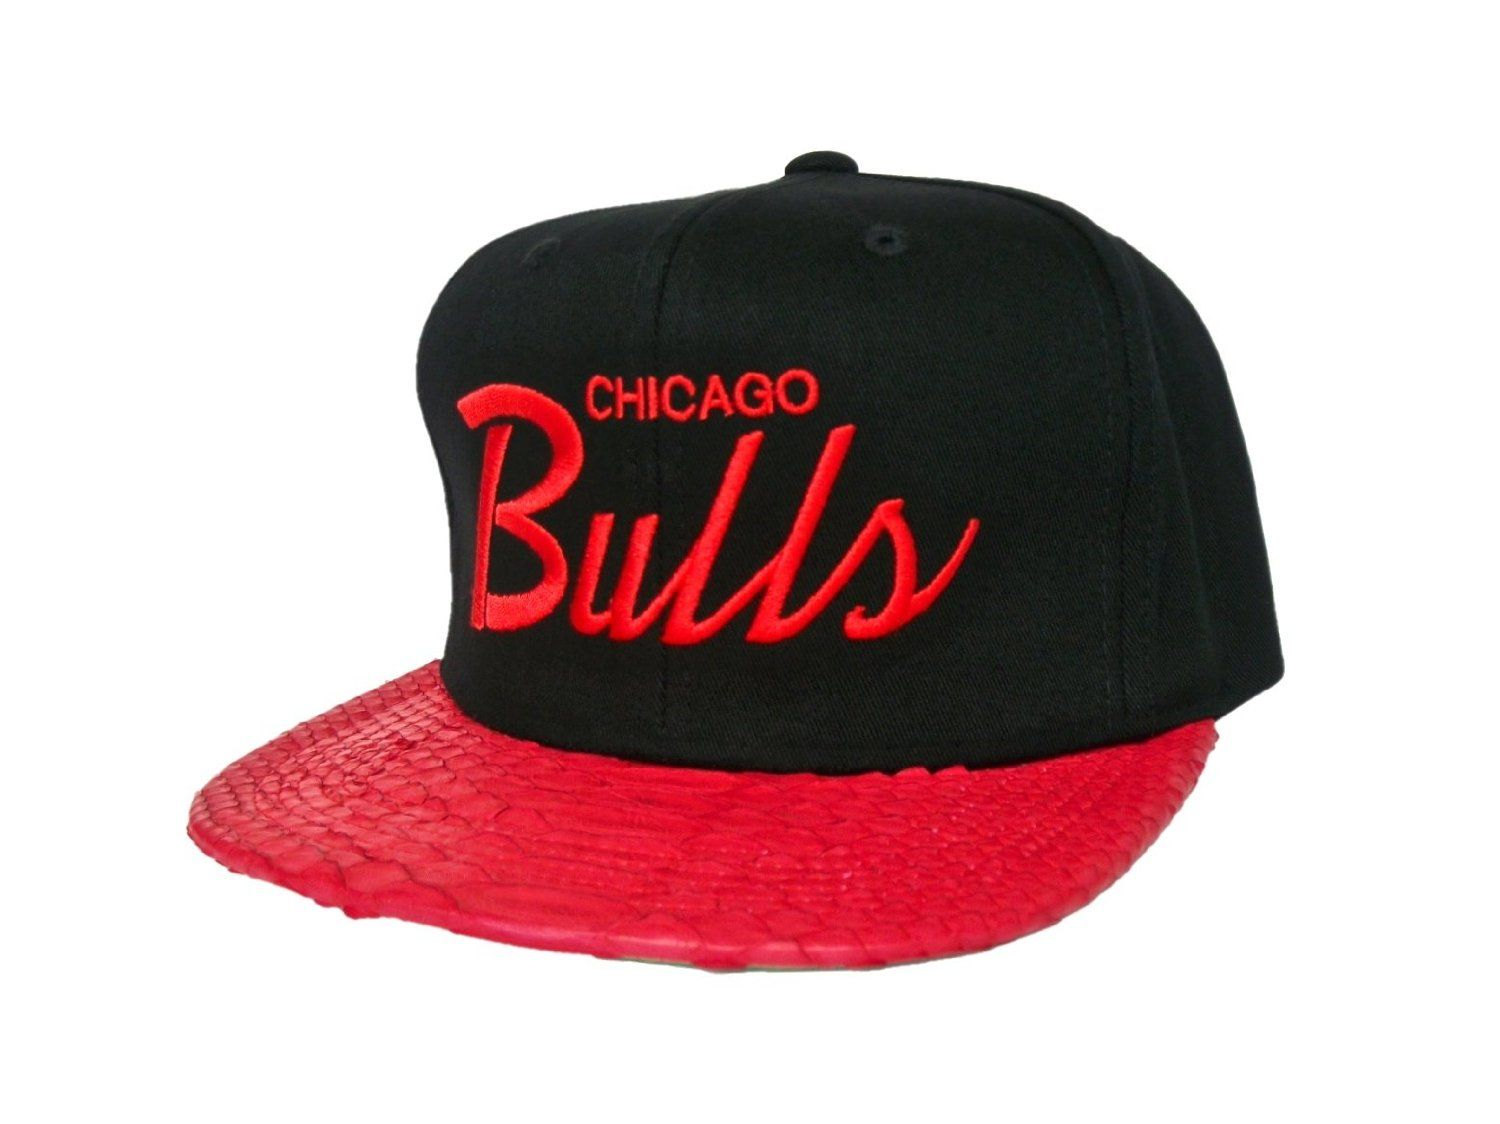 Mitchell   Ness Custom Genuine Red Snakeskin Strapback Hat - CHICAGO BULLS  Script Strap Back Hat - NBA Hat - LIMITED EDITION  Amazon.co.uk  Sports    ... fcac817c6f0